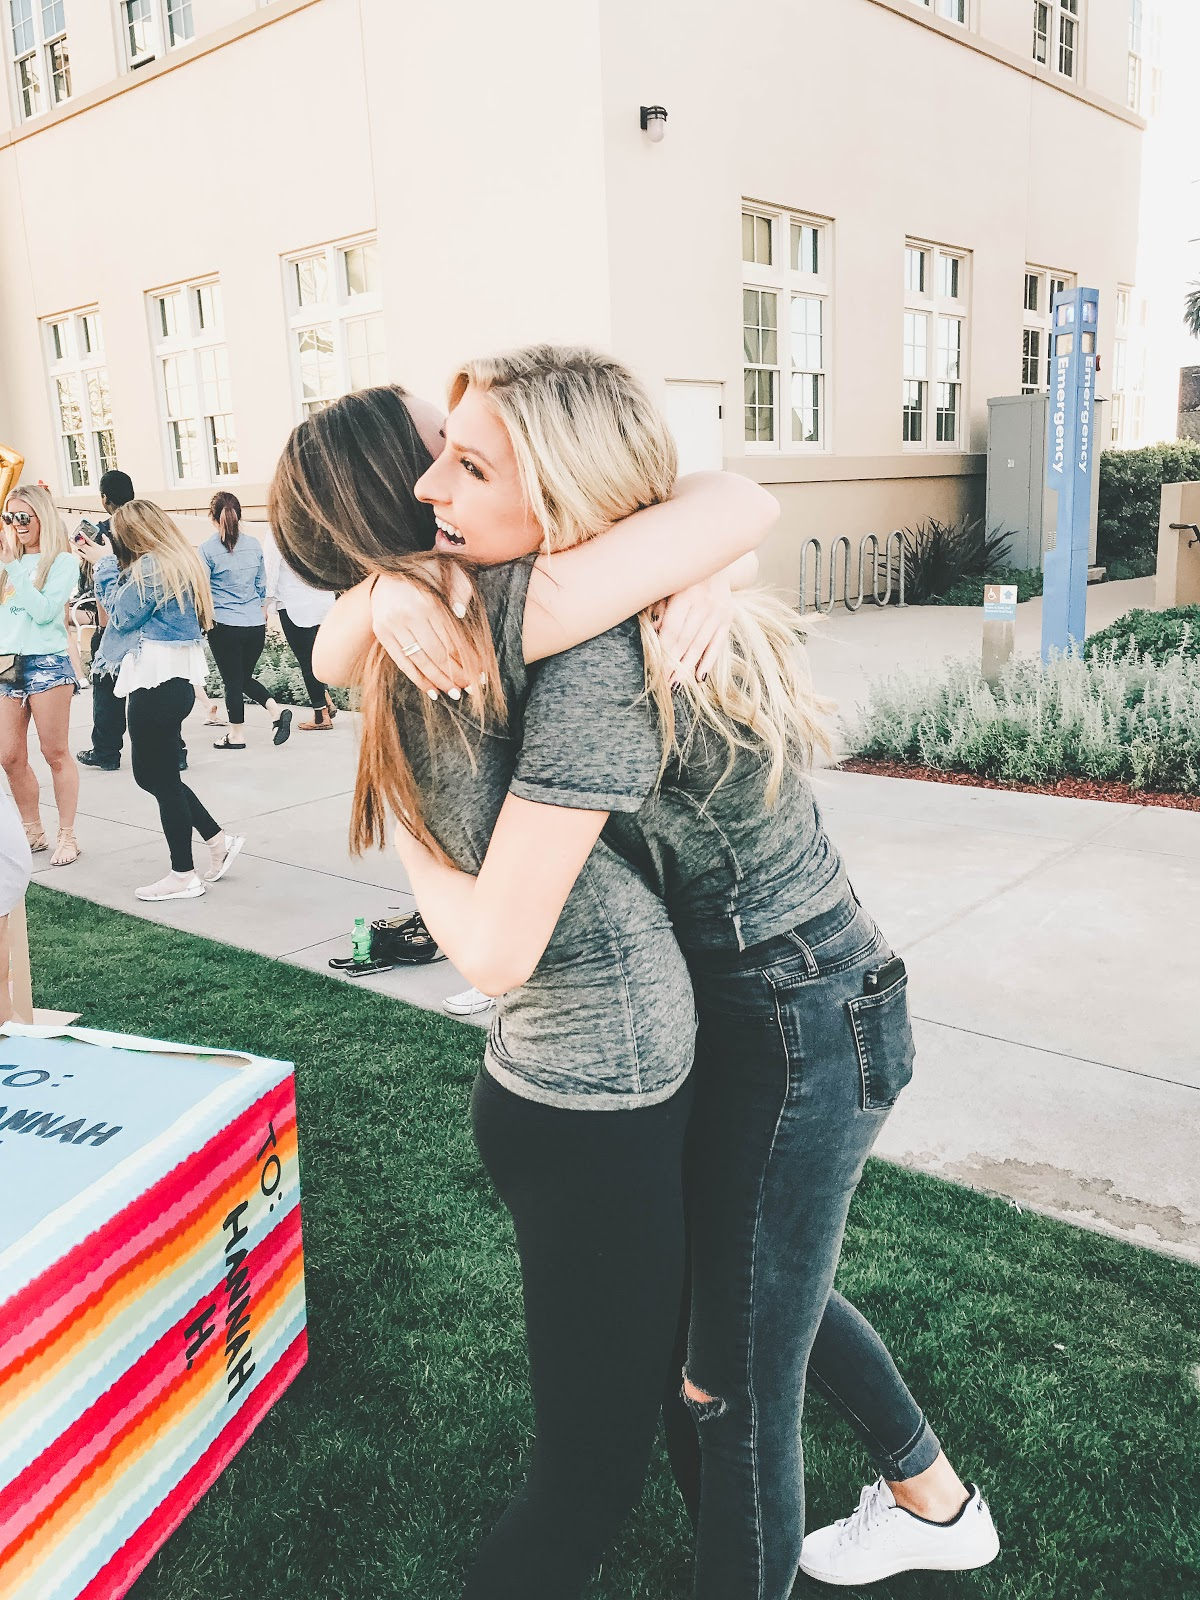 Big/Little Reveal Hugging